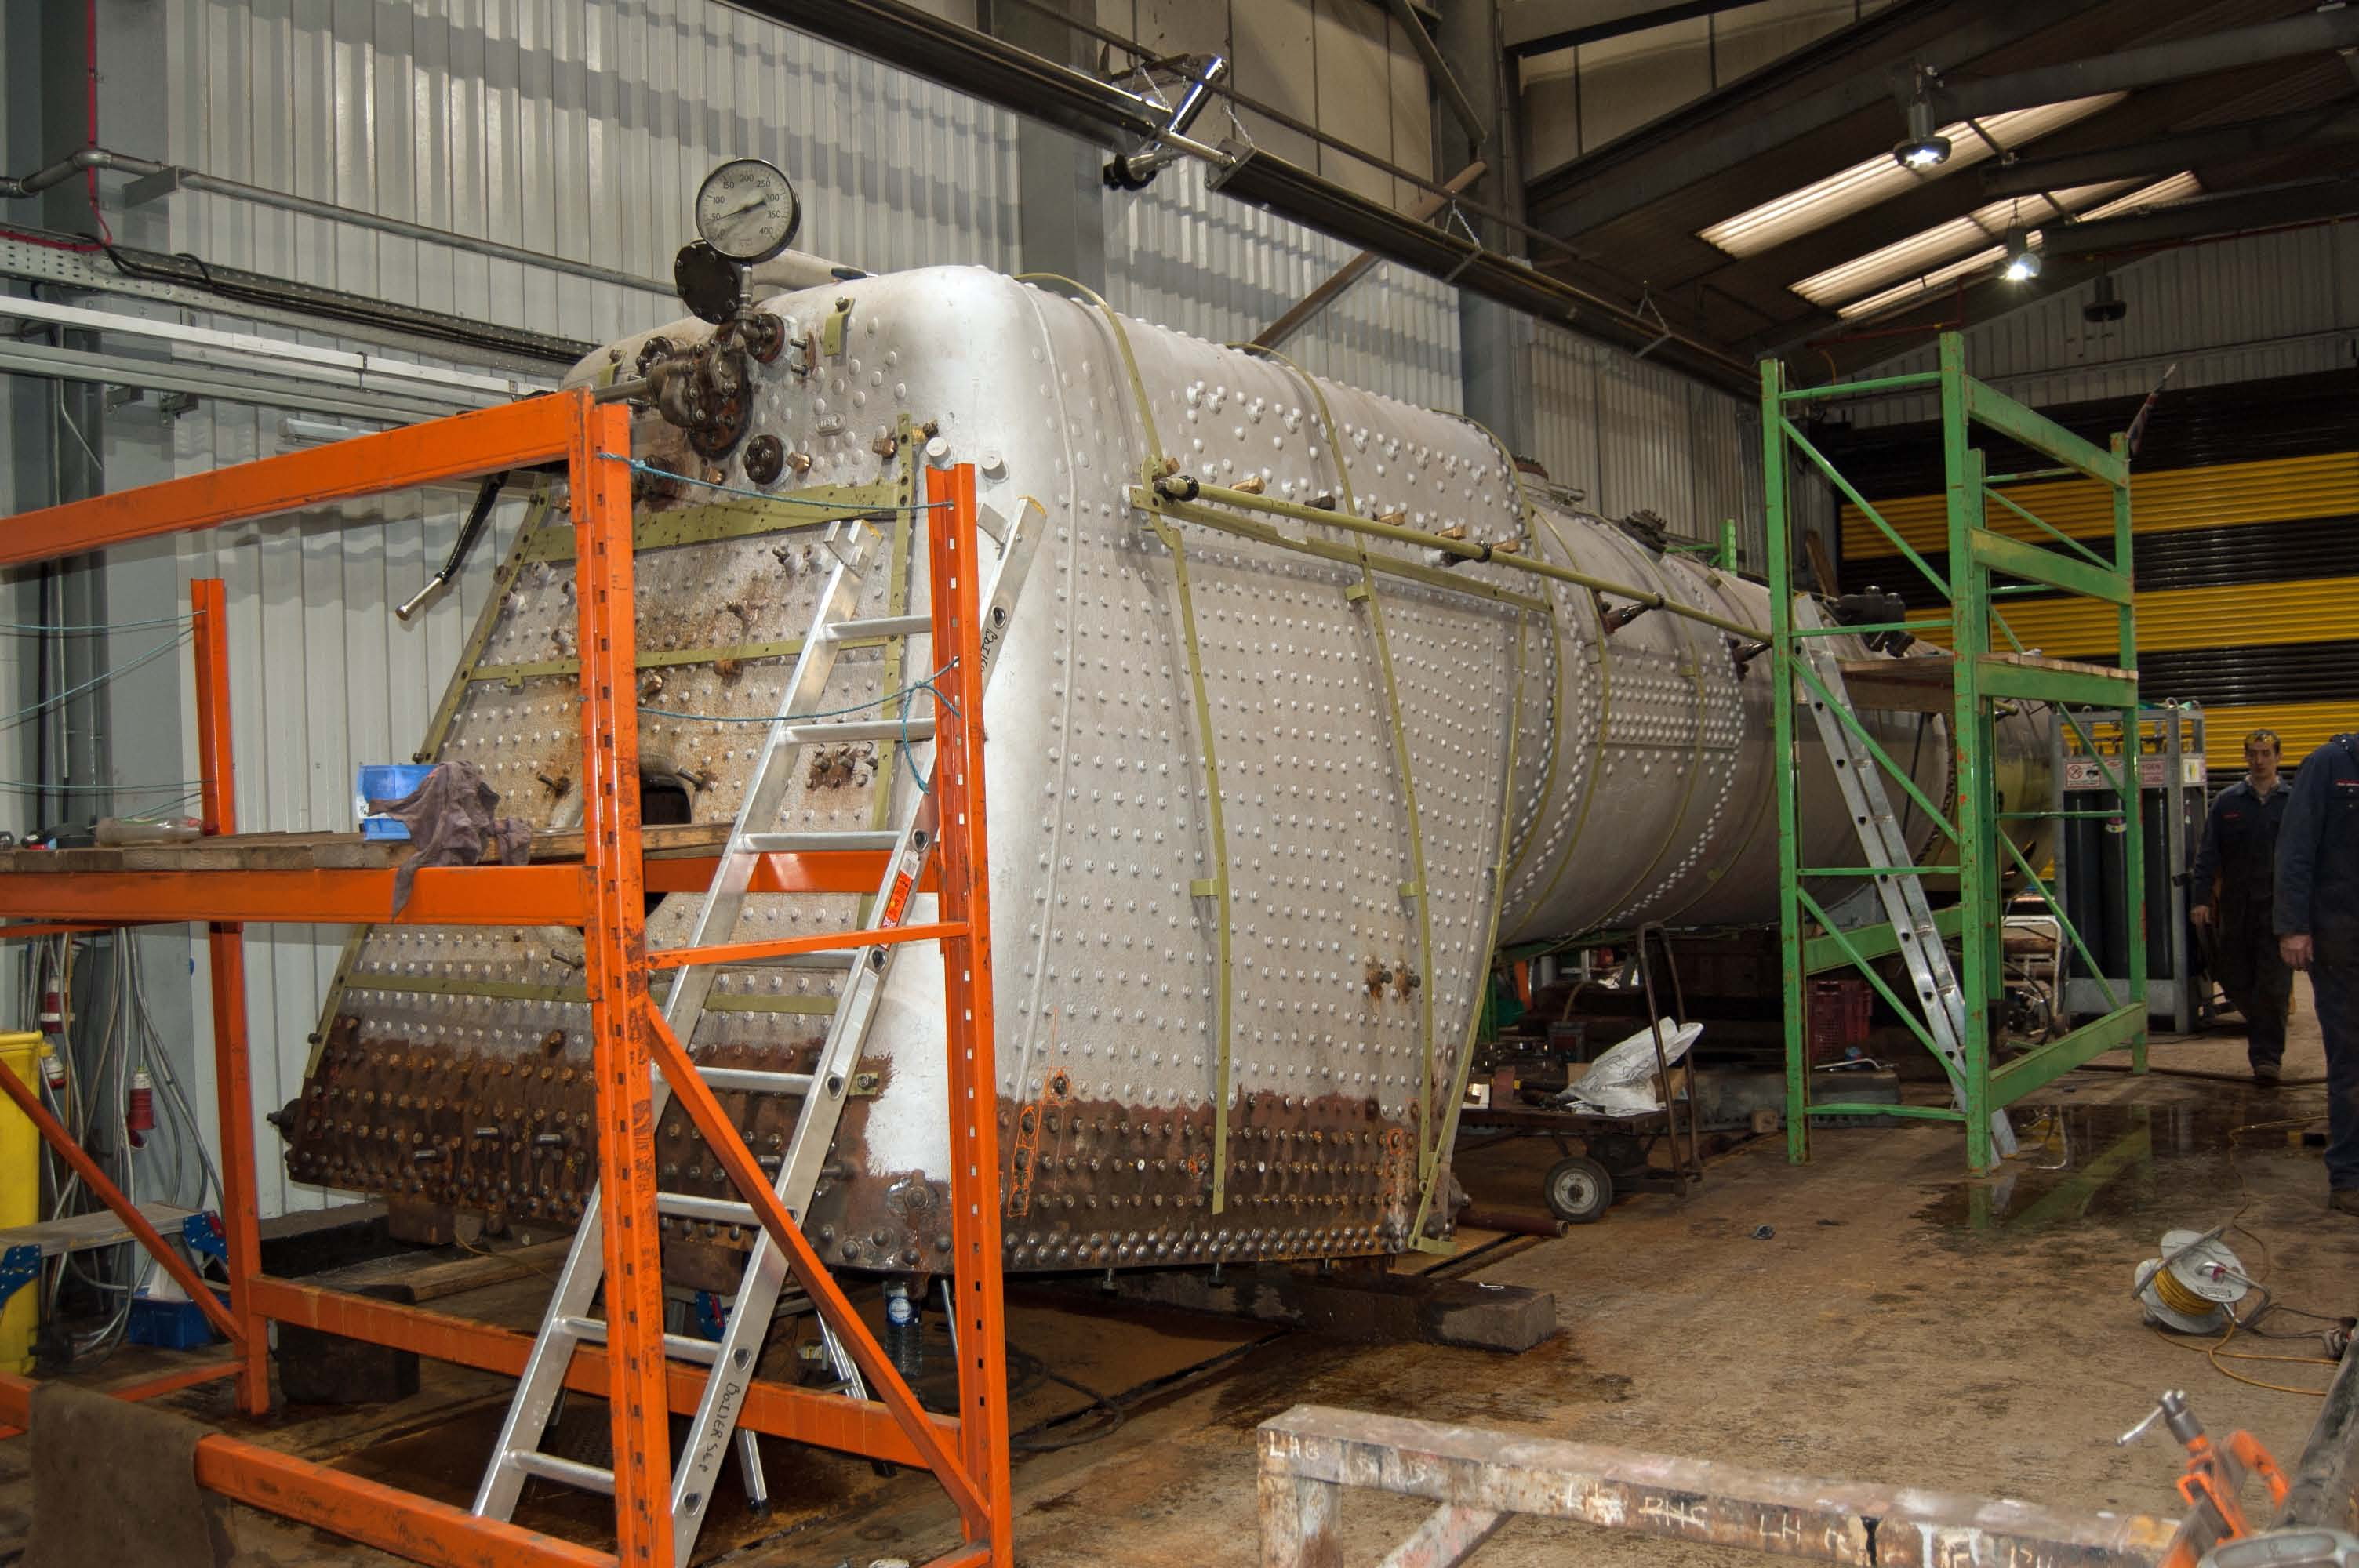 The boiler is prepared for the official hydraulic test